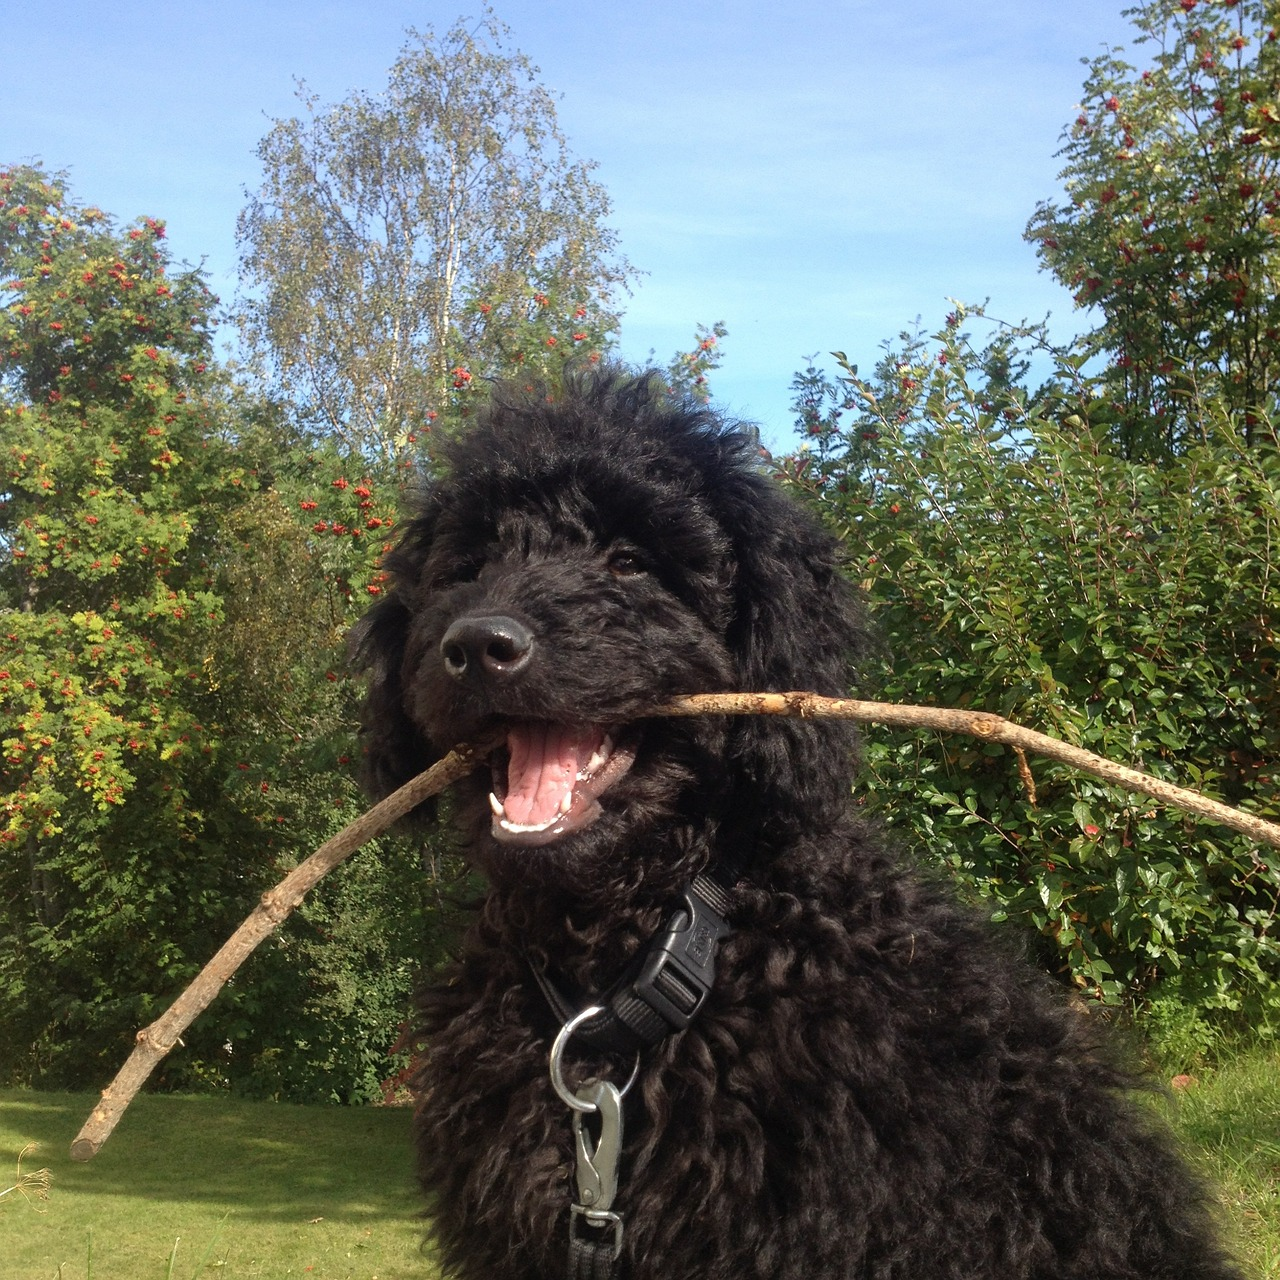 labradoodle dog with stick in mouth